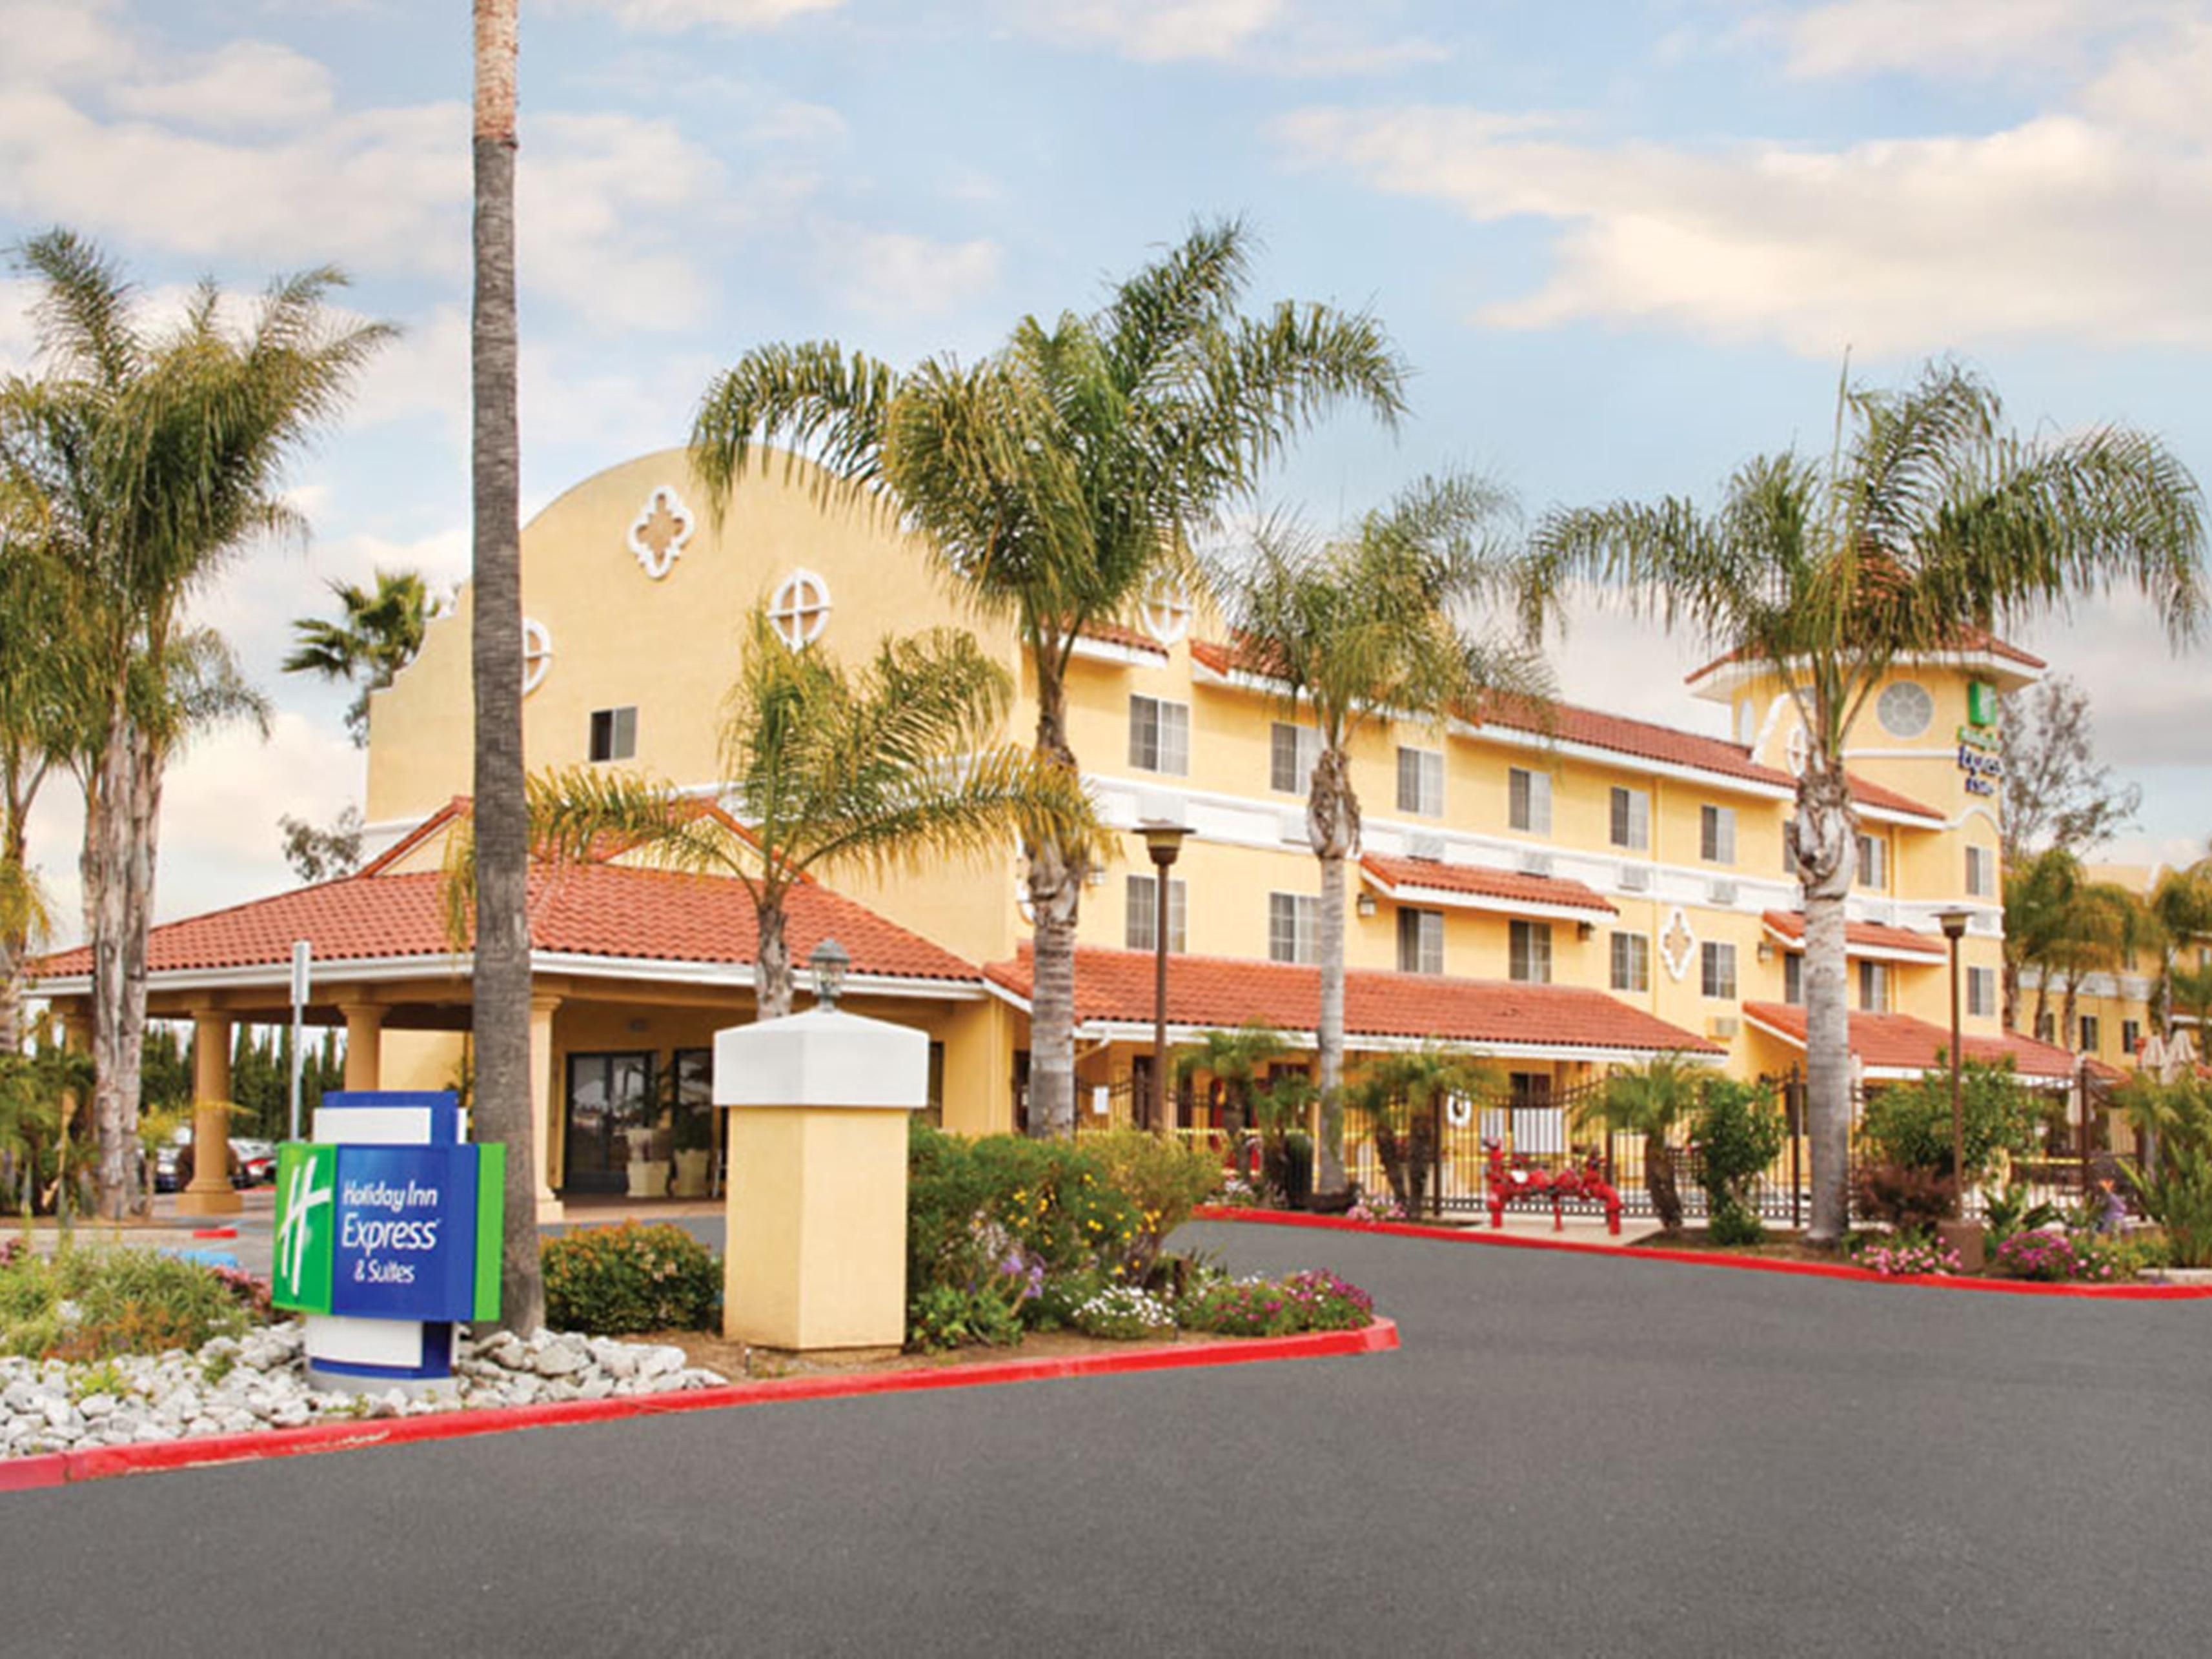 Holiday Inn Express Amp Suites San Diego Escondido Hotel By Ihg